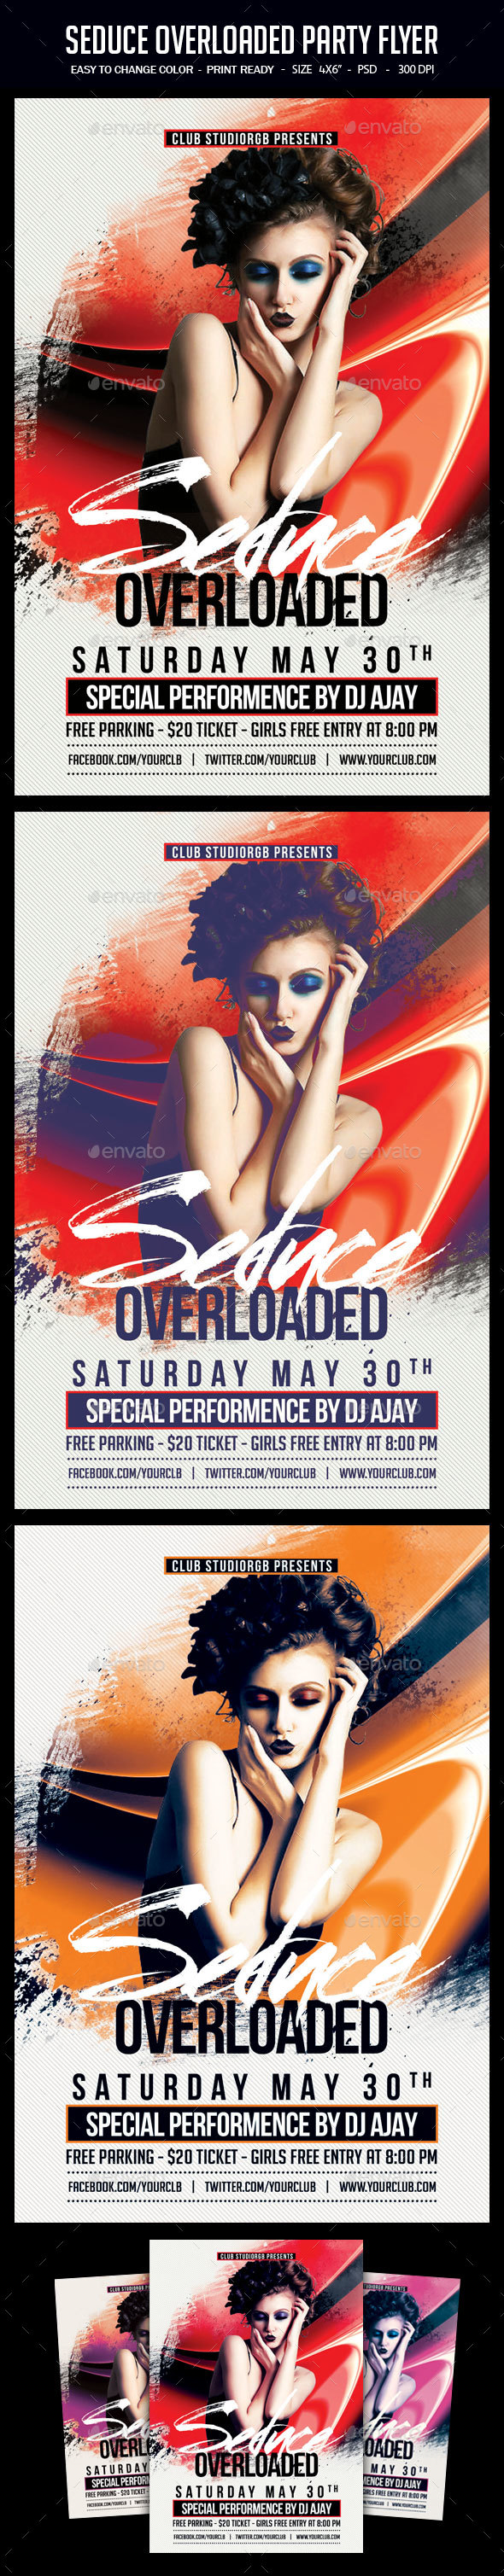 Seduce Overloaded Party Flyer - Clubs & Parties Events